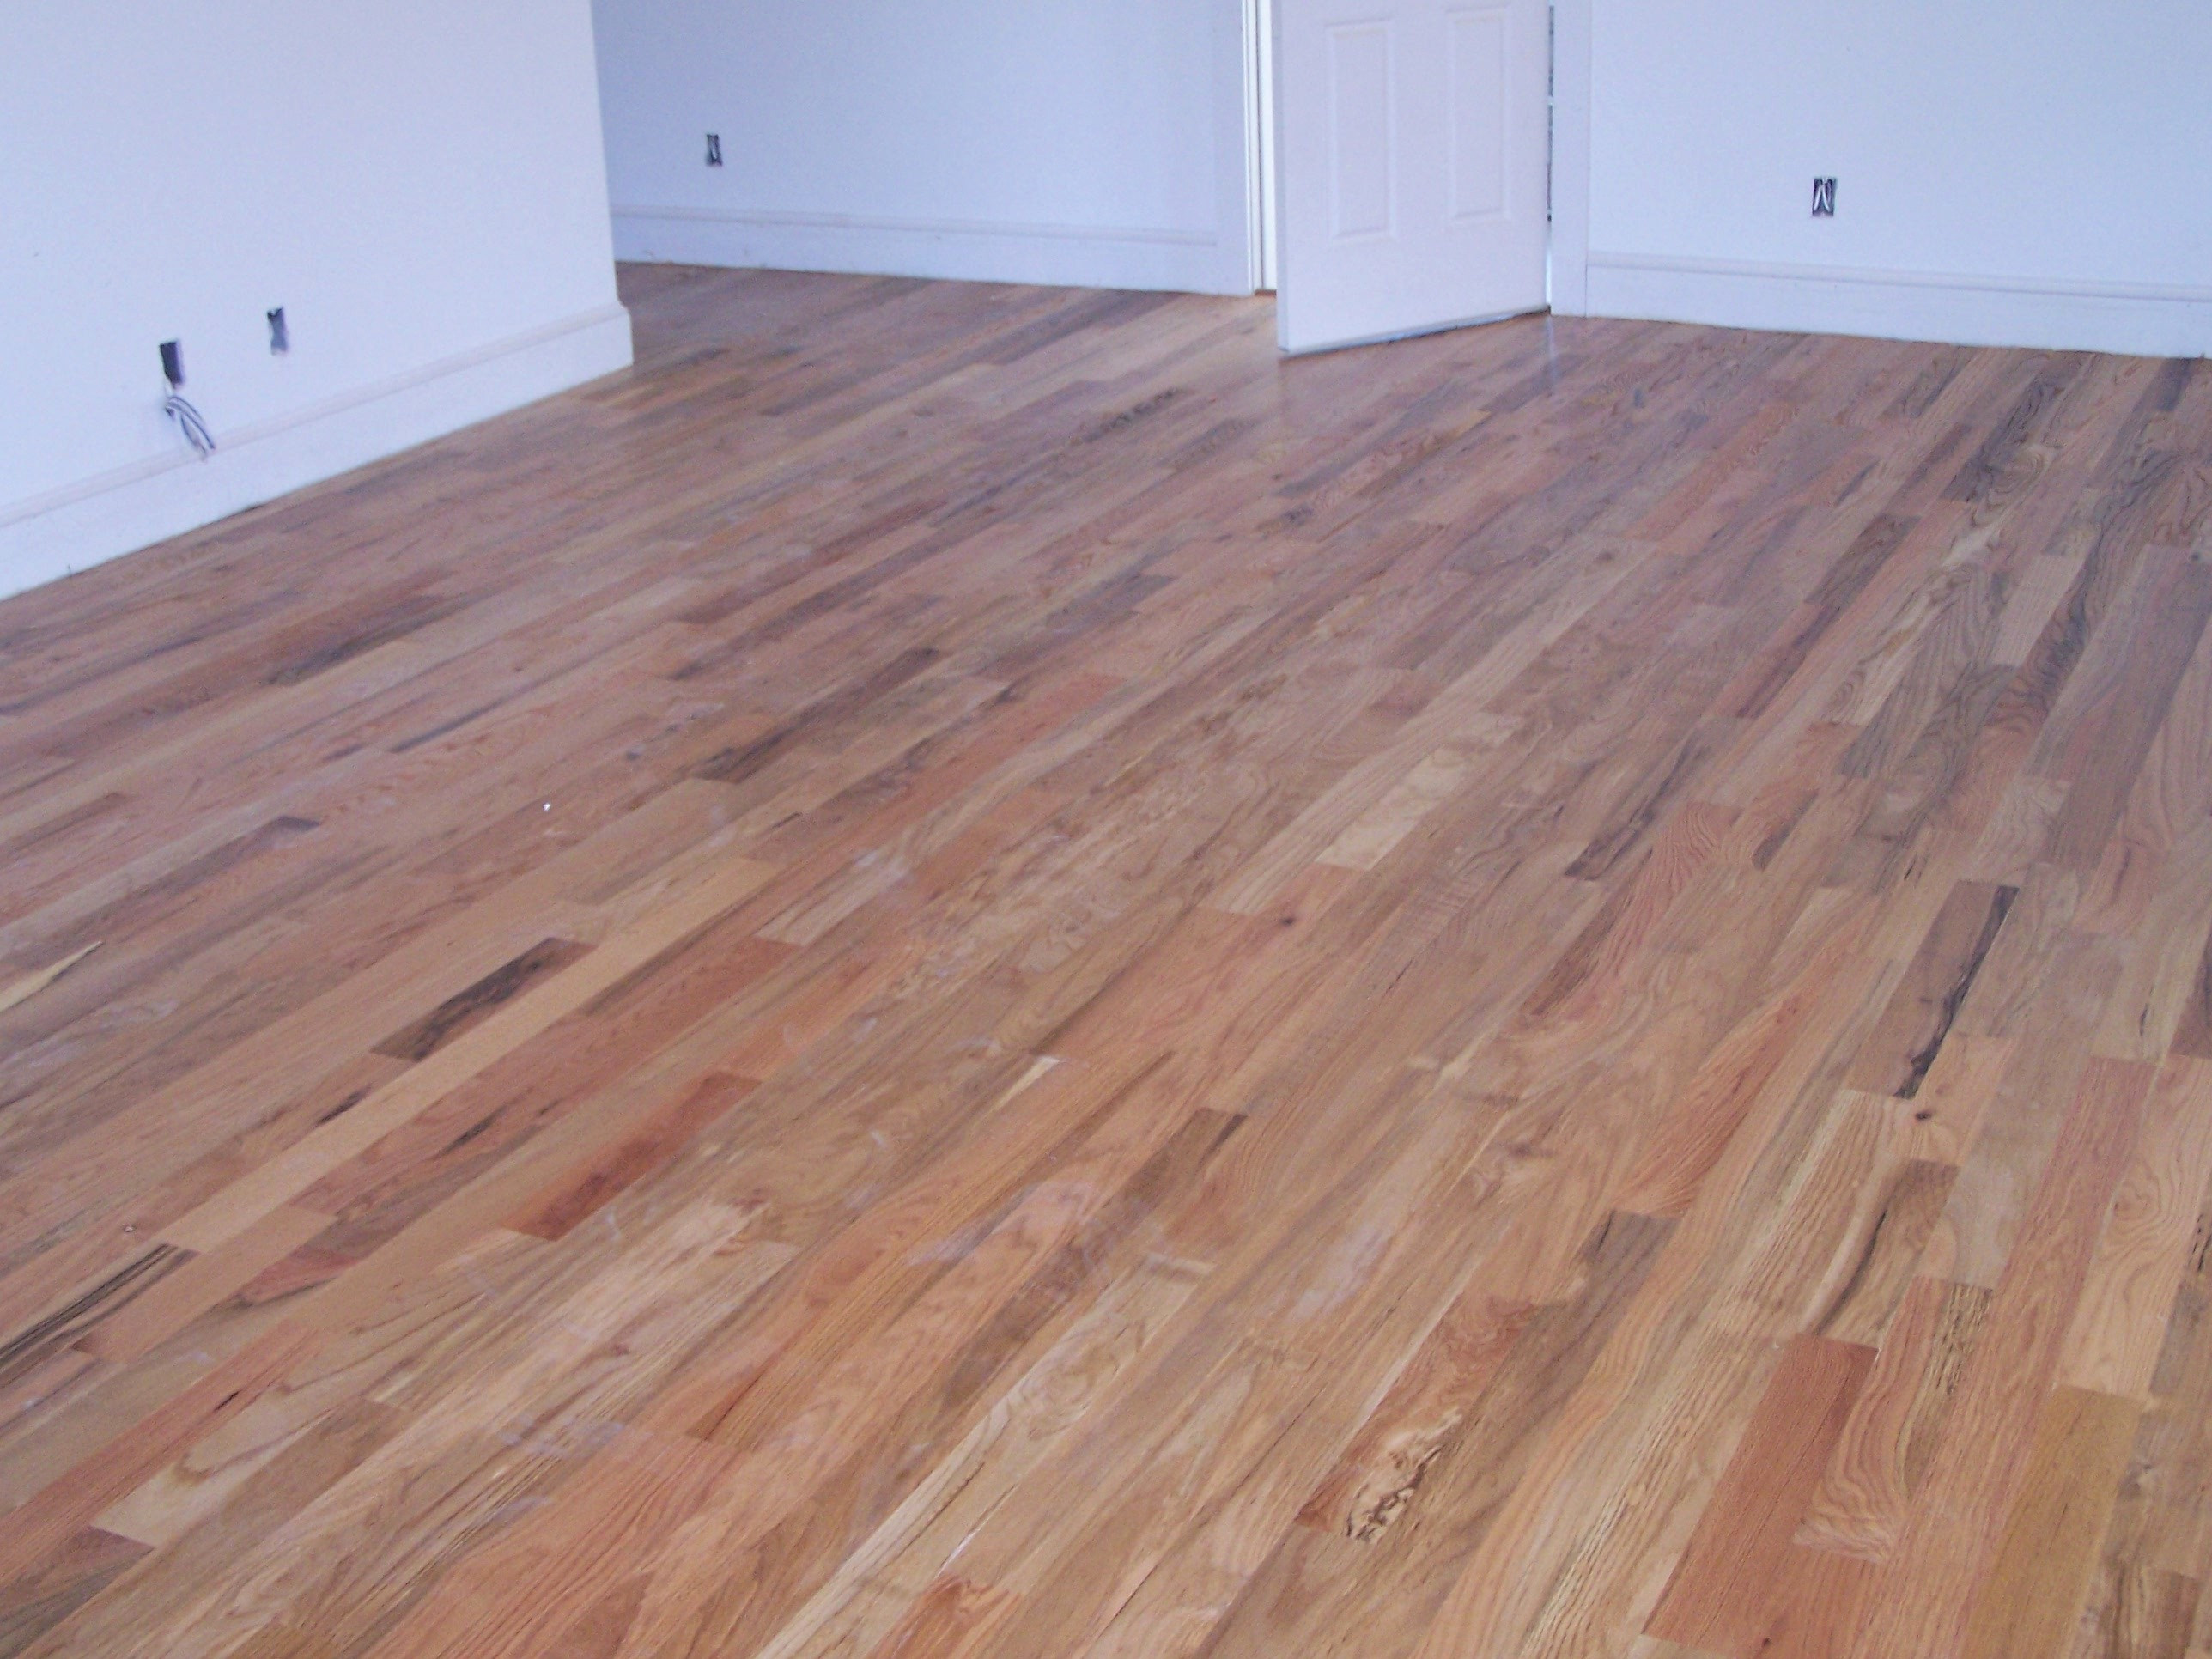 Bamboo Flooring Compared to Hardwood Of 13 Best Of Cost Of Hardwood Floors Gallery Dizpos Com Throughout Cost Of Hardwood Floors Inspirational 50 New How to Stain Hardwood Floors 50 S Gallery Of